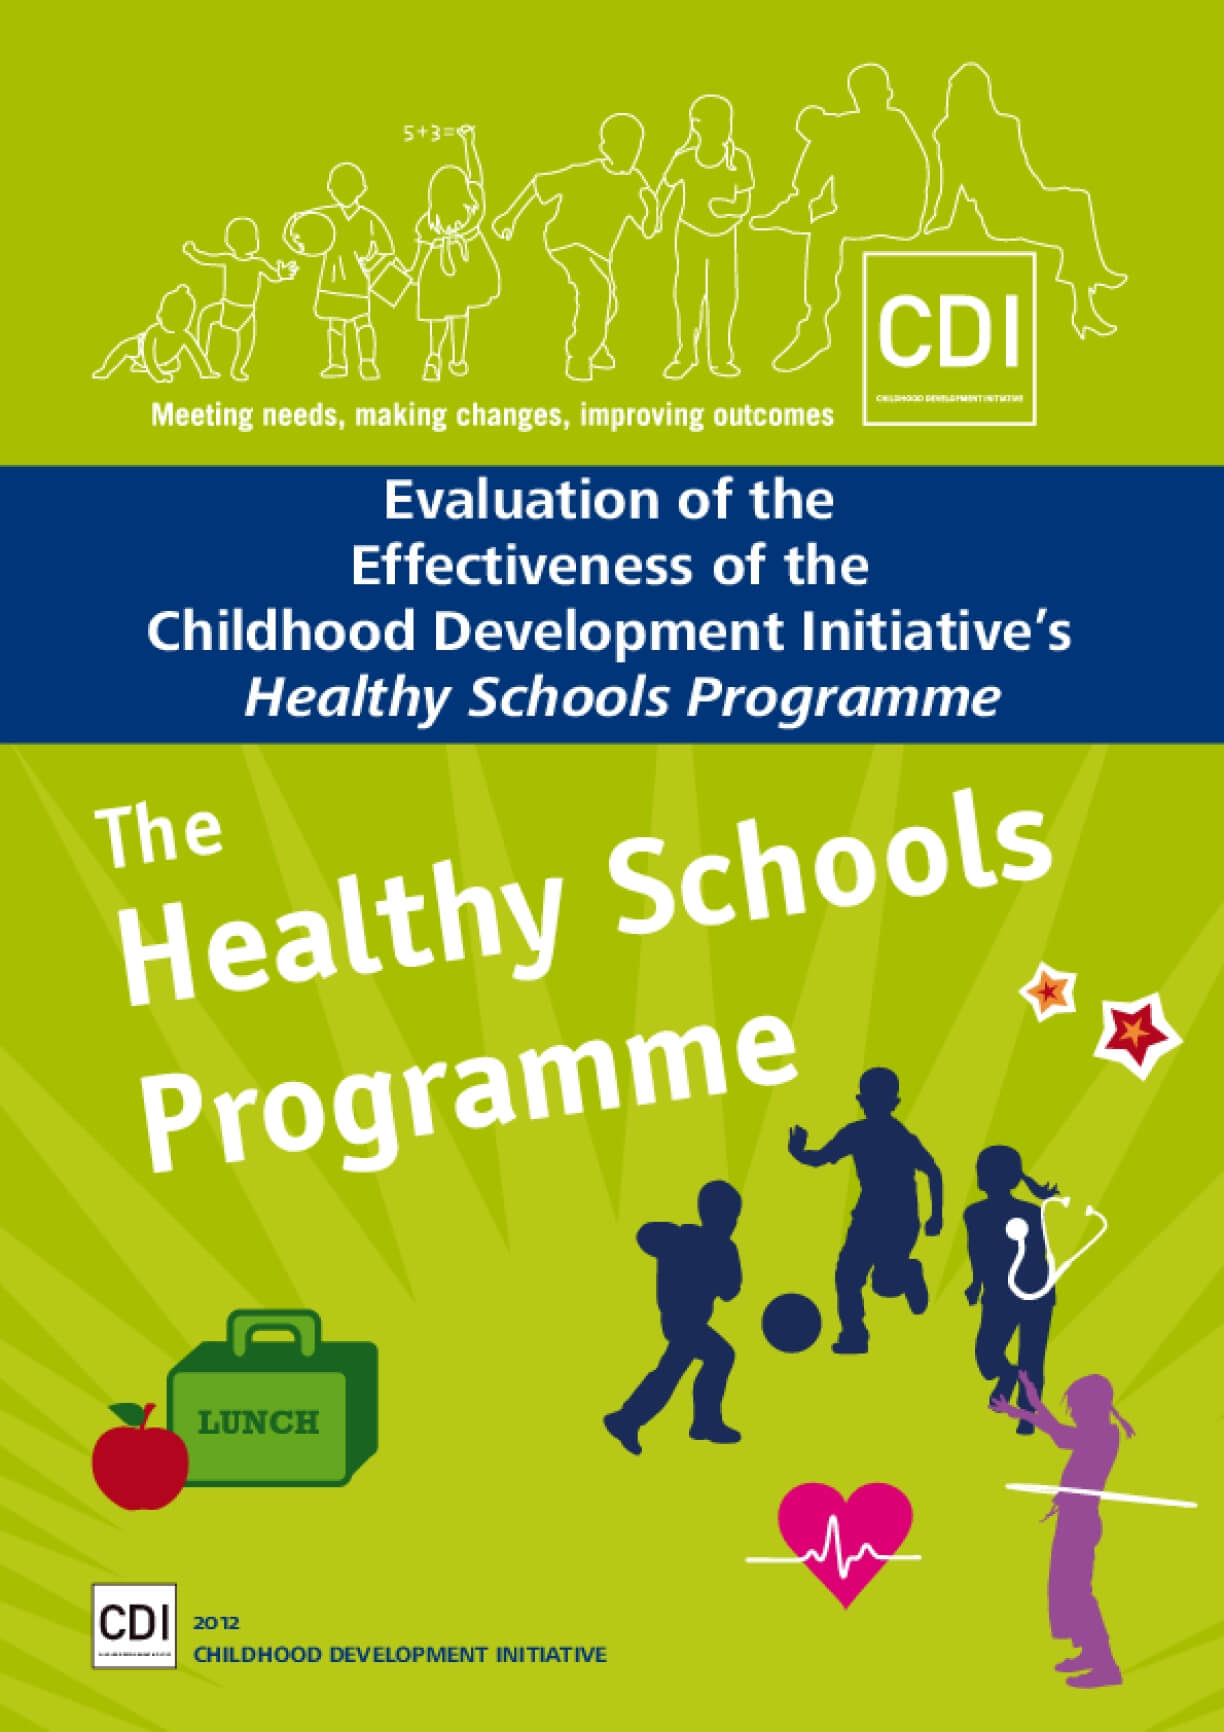 Evaluation of Effectiveness of the Childhood Development Initiative's Healthy Schools Programme